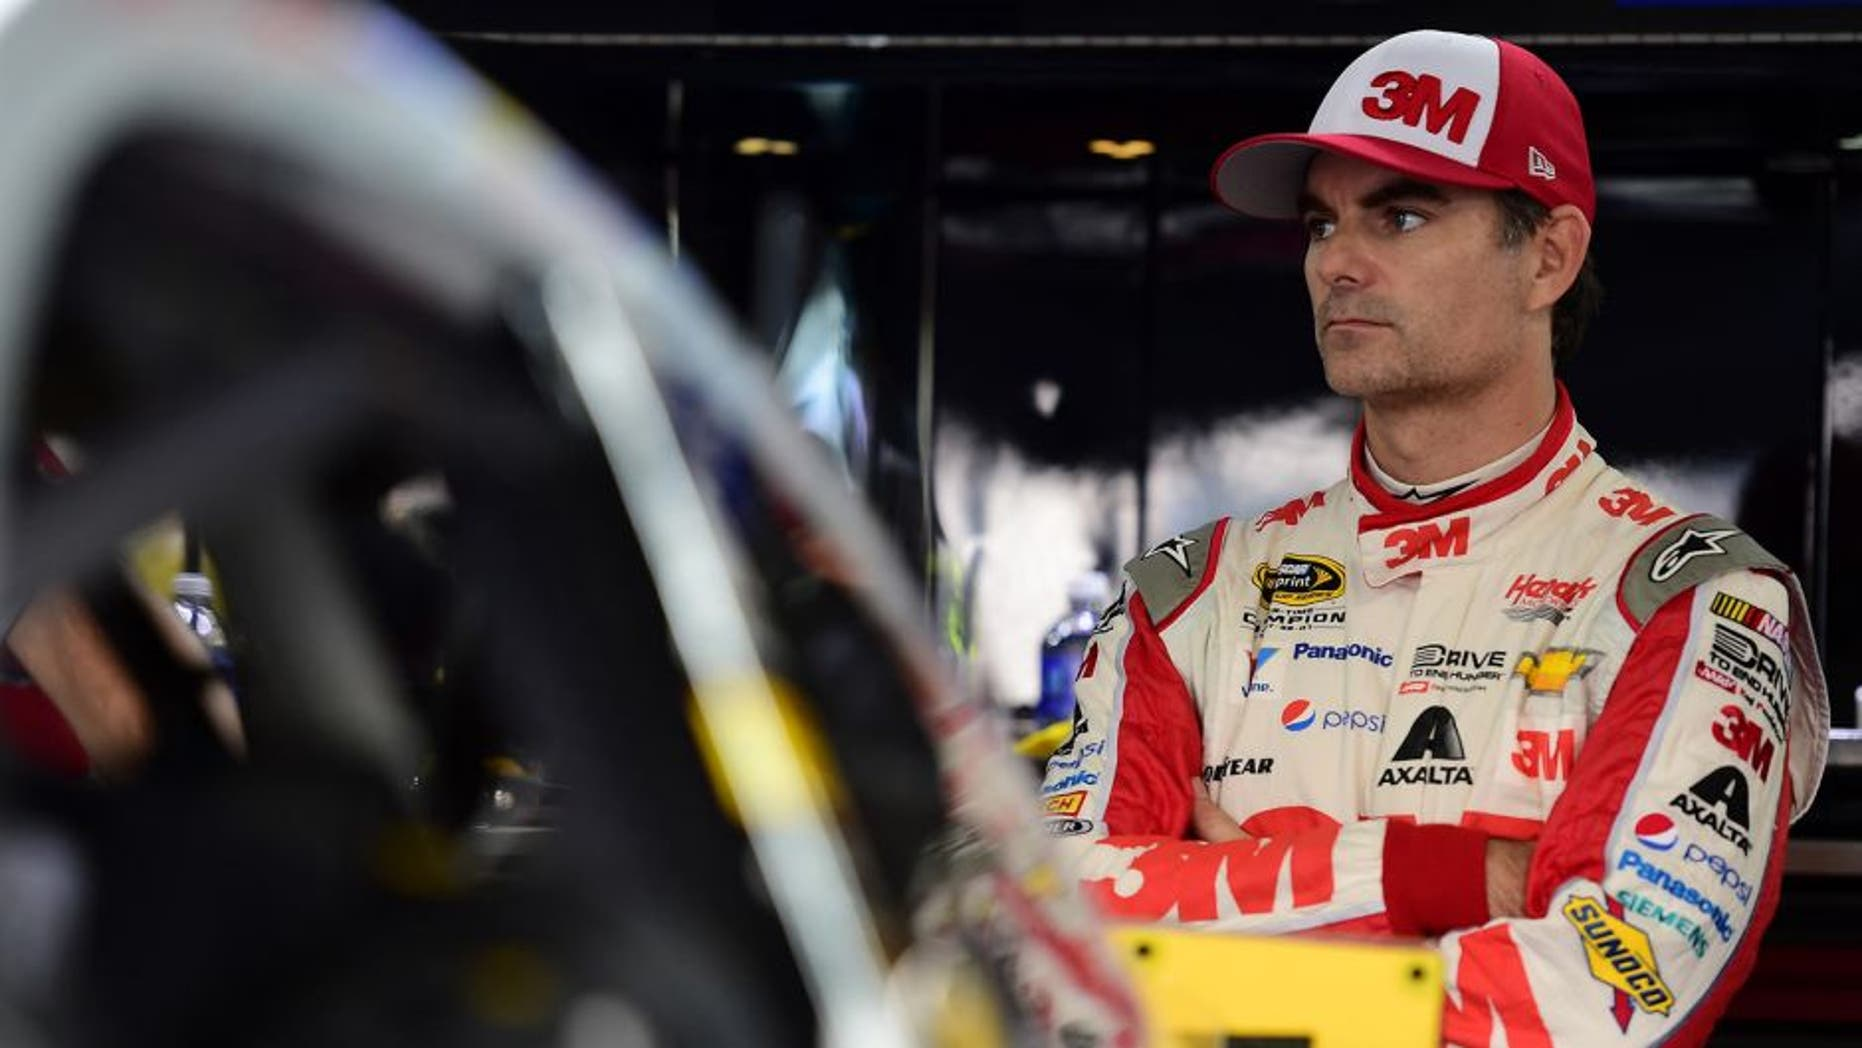 CHARLOTTE, NC - OCTOBER 09: Jeff Gordon, driver of the #24 3M Chevrolet, stands in the garage arstands in the garage areaduring practice for the NASCAR Sprint Cup Series Bank of America 500 at Charlotte Motor Speedway on October 9, 2015 in Charlotte, North Carolina. (Photo by Jared C. Tilton/NASCAR via Getty Images)